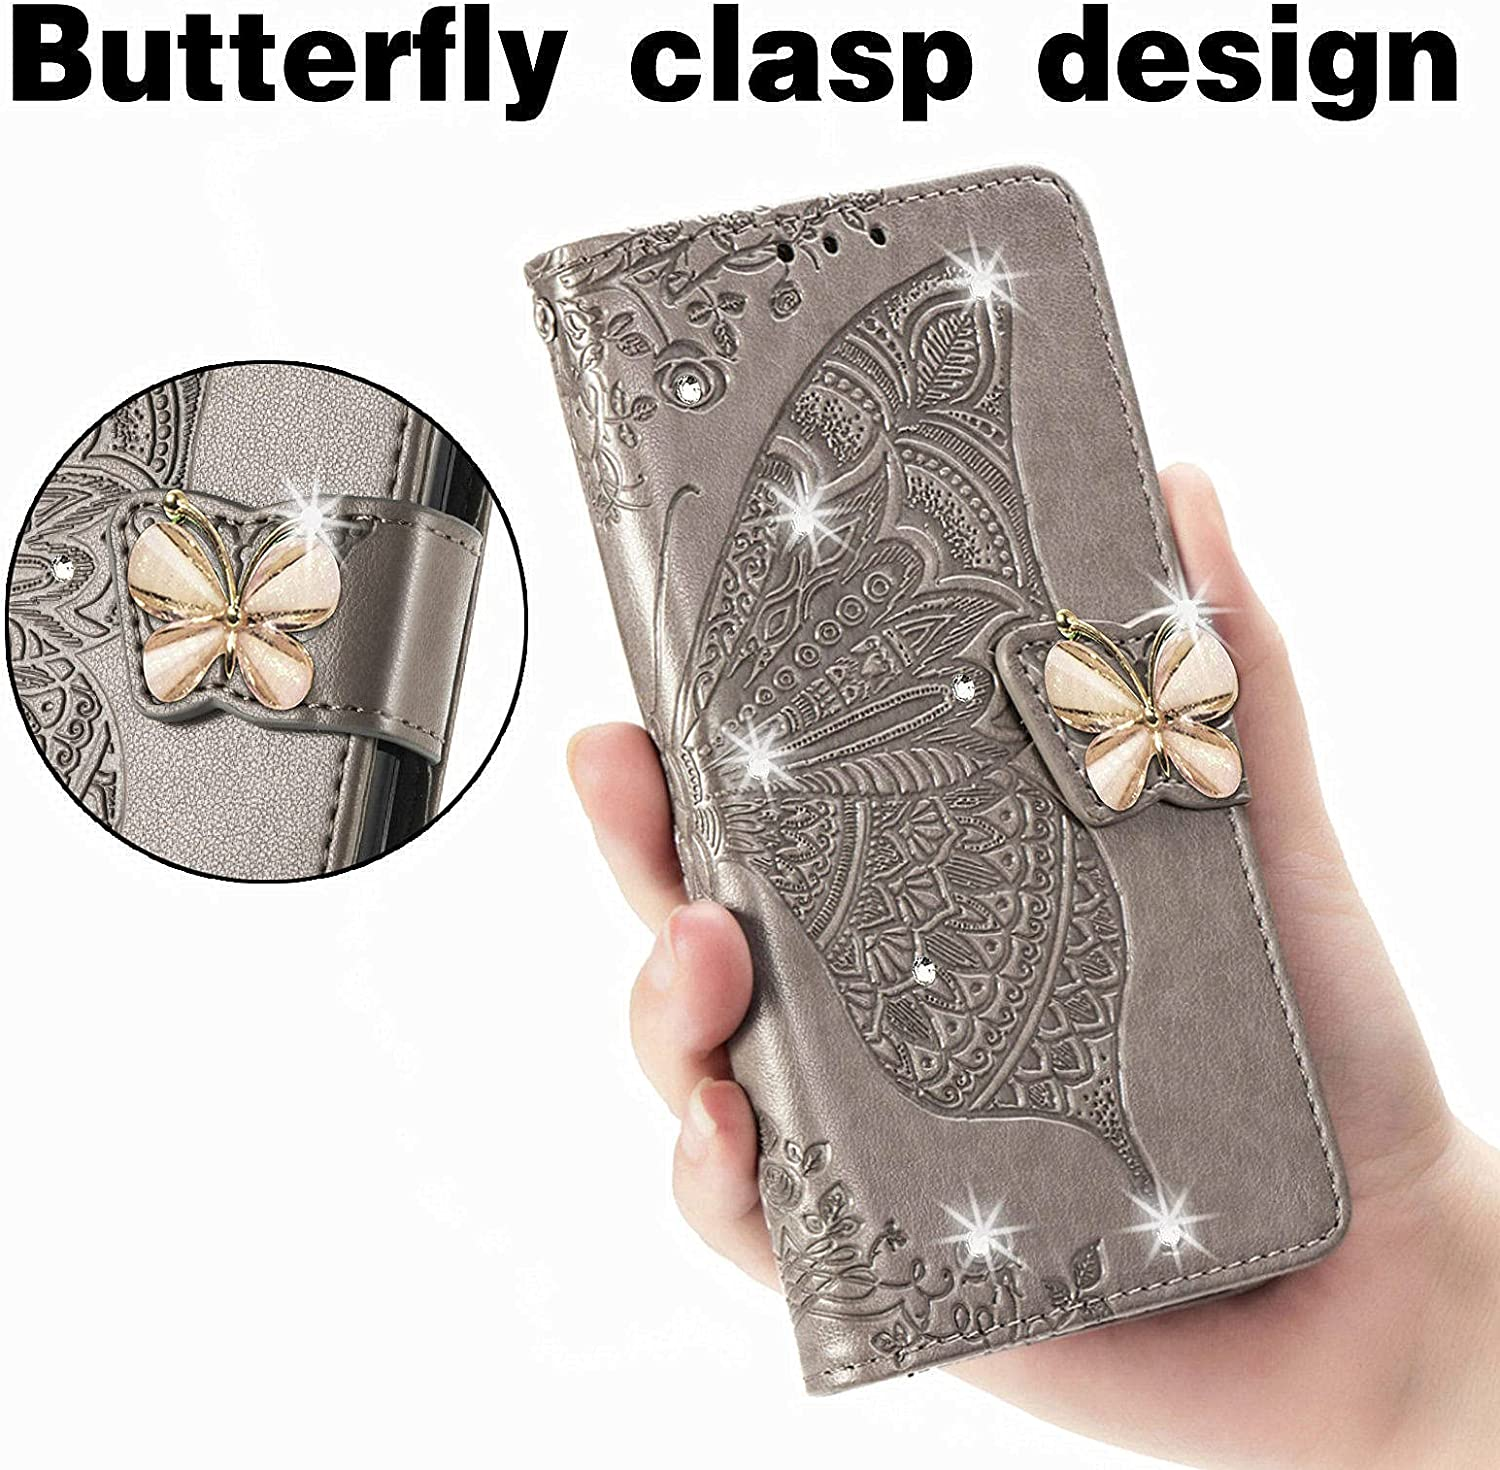 CCSmall Samsung Galaxy Z Fold3 5G Wallet Case,Kawaii 3D Butterfly Embossing Slim Flip PU Leather with Magnetic Closure Credit Card Slots Holder Phone Cover for Samsung Galaxy Z Fold 3 Rhinestone Grey